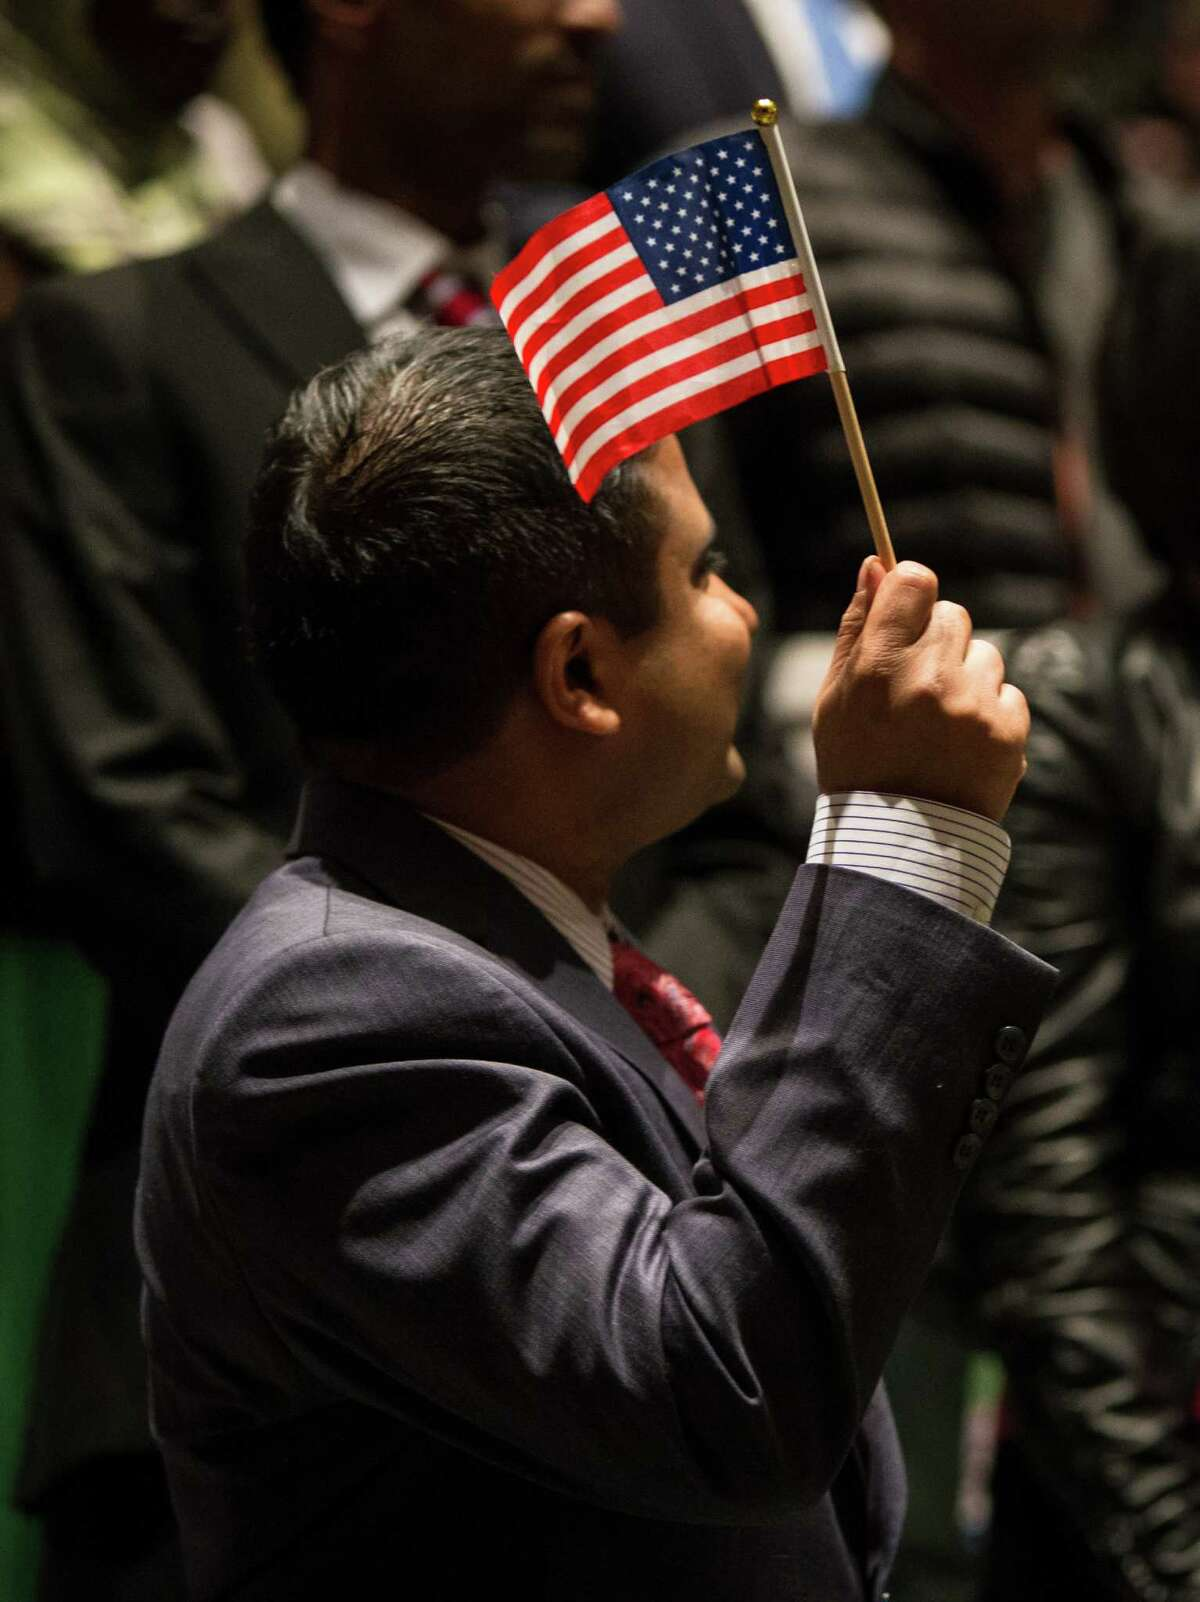 A candidate waves an American flag at the National Library Week annual naturalization ceremony in the Seattle Public Library on Monday, April 13, 2014. Seattle District Director Anne Arries Corsano welcomed 75 new citizens with the Oath of Allegiance.